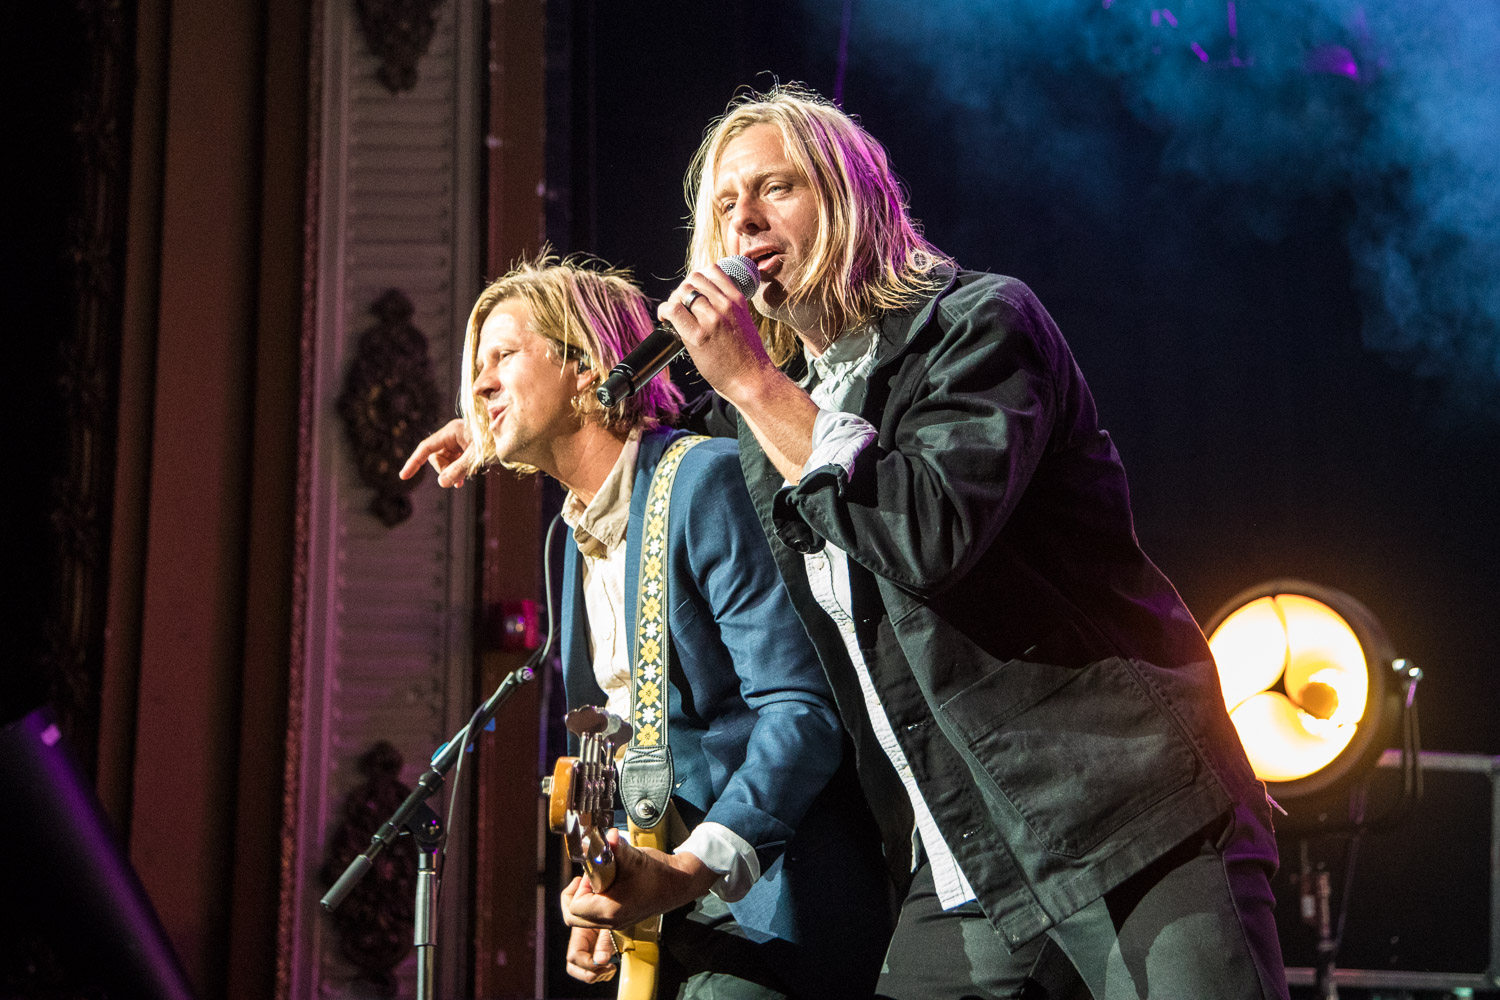 Jon and Tim Foreman of Switchfoot